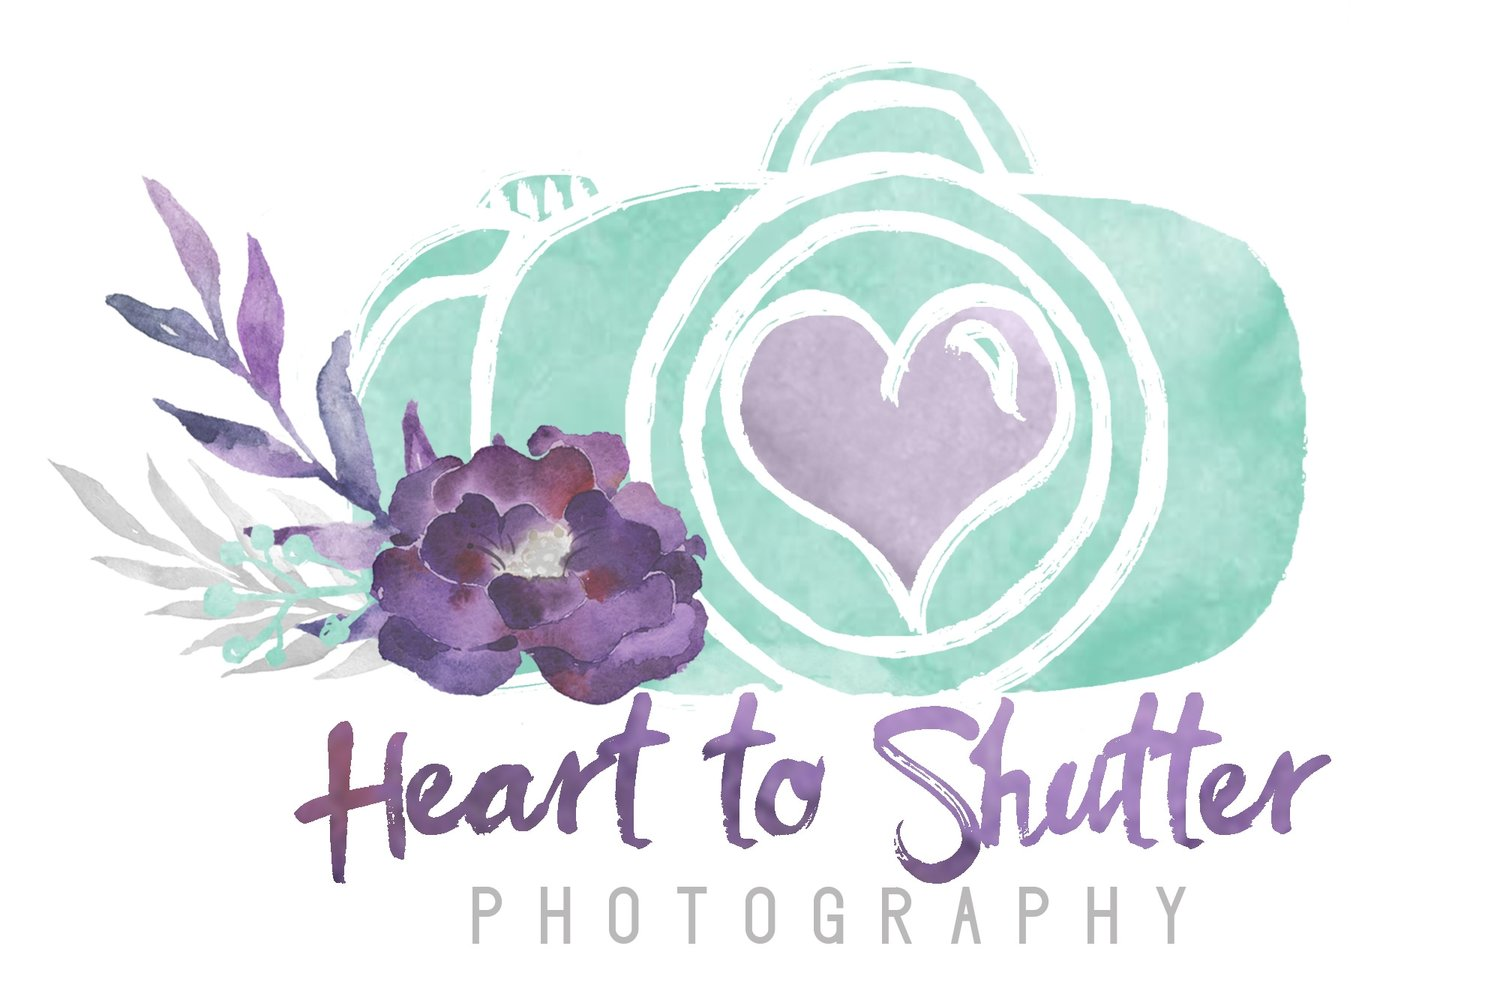 Heart to Shutter Photography